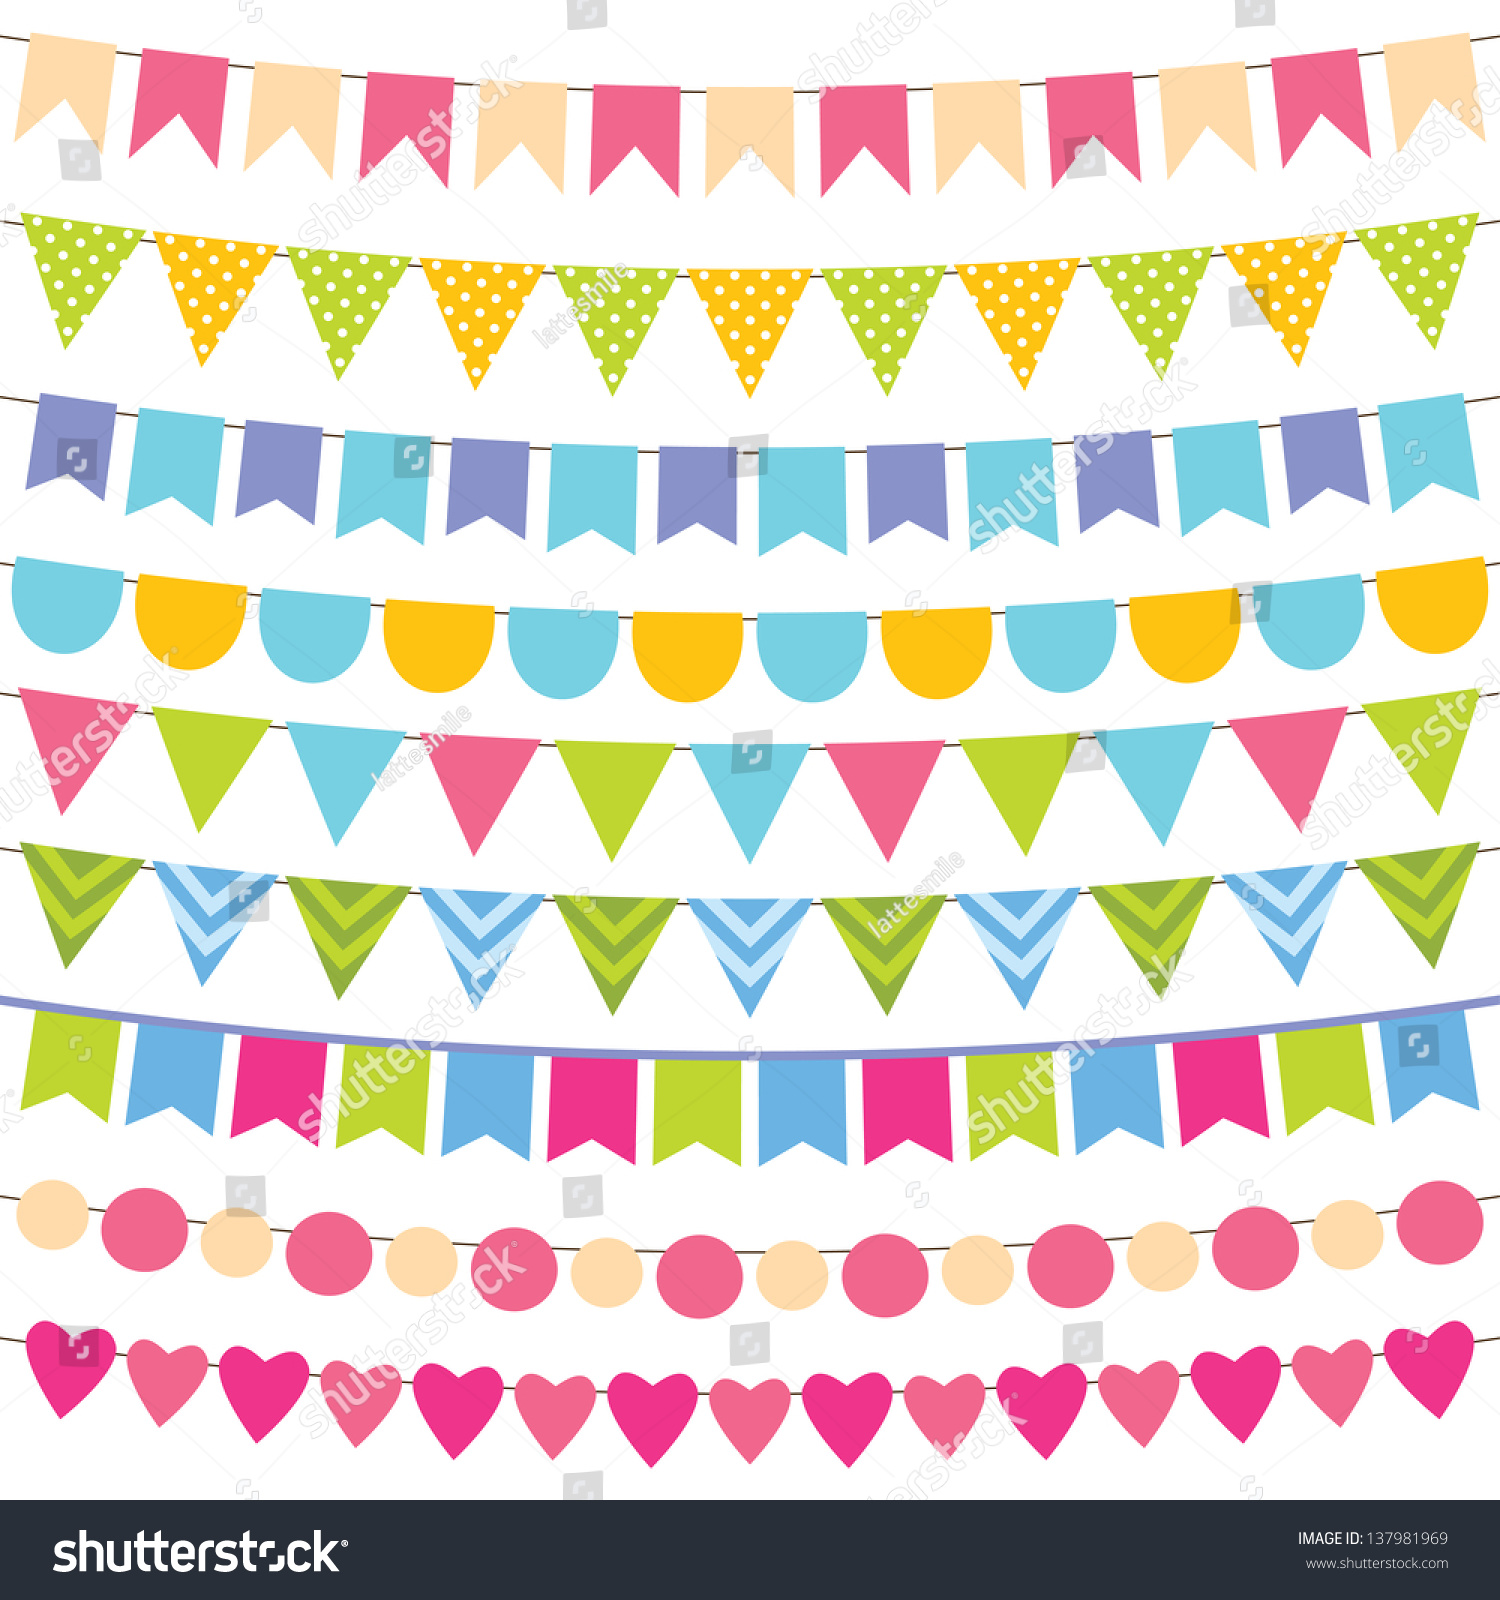 Vector Birthday Party Decoration Stock Vector 137981969